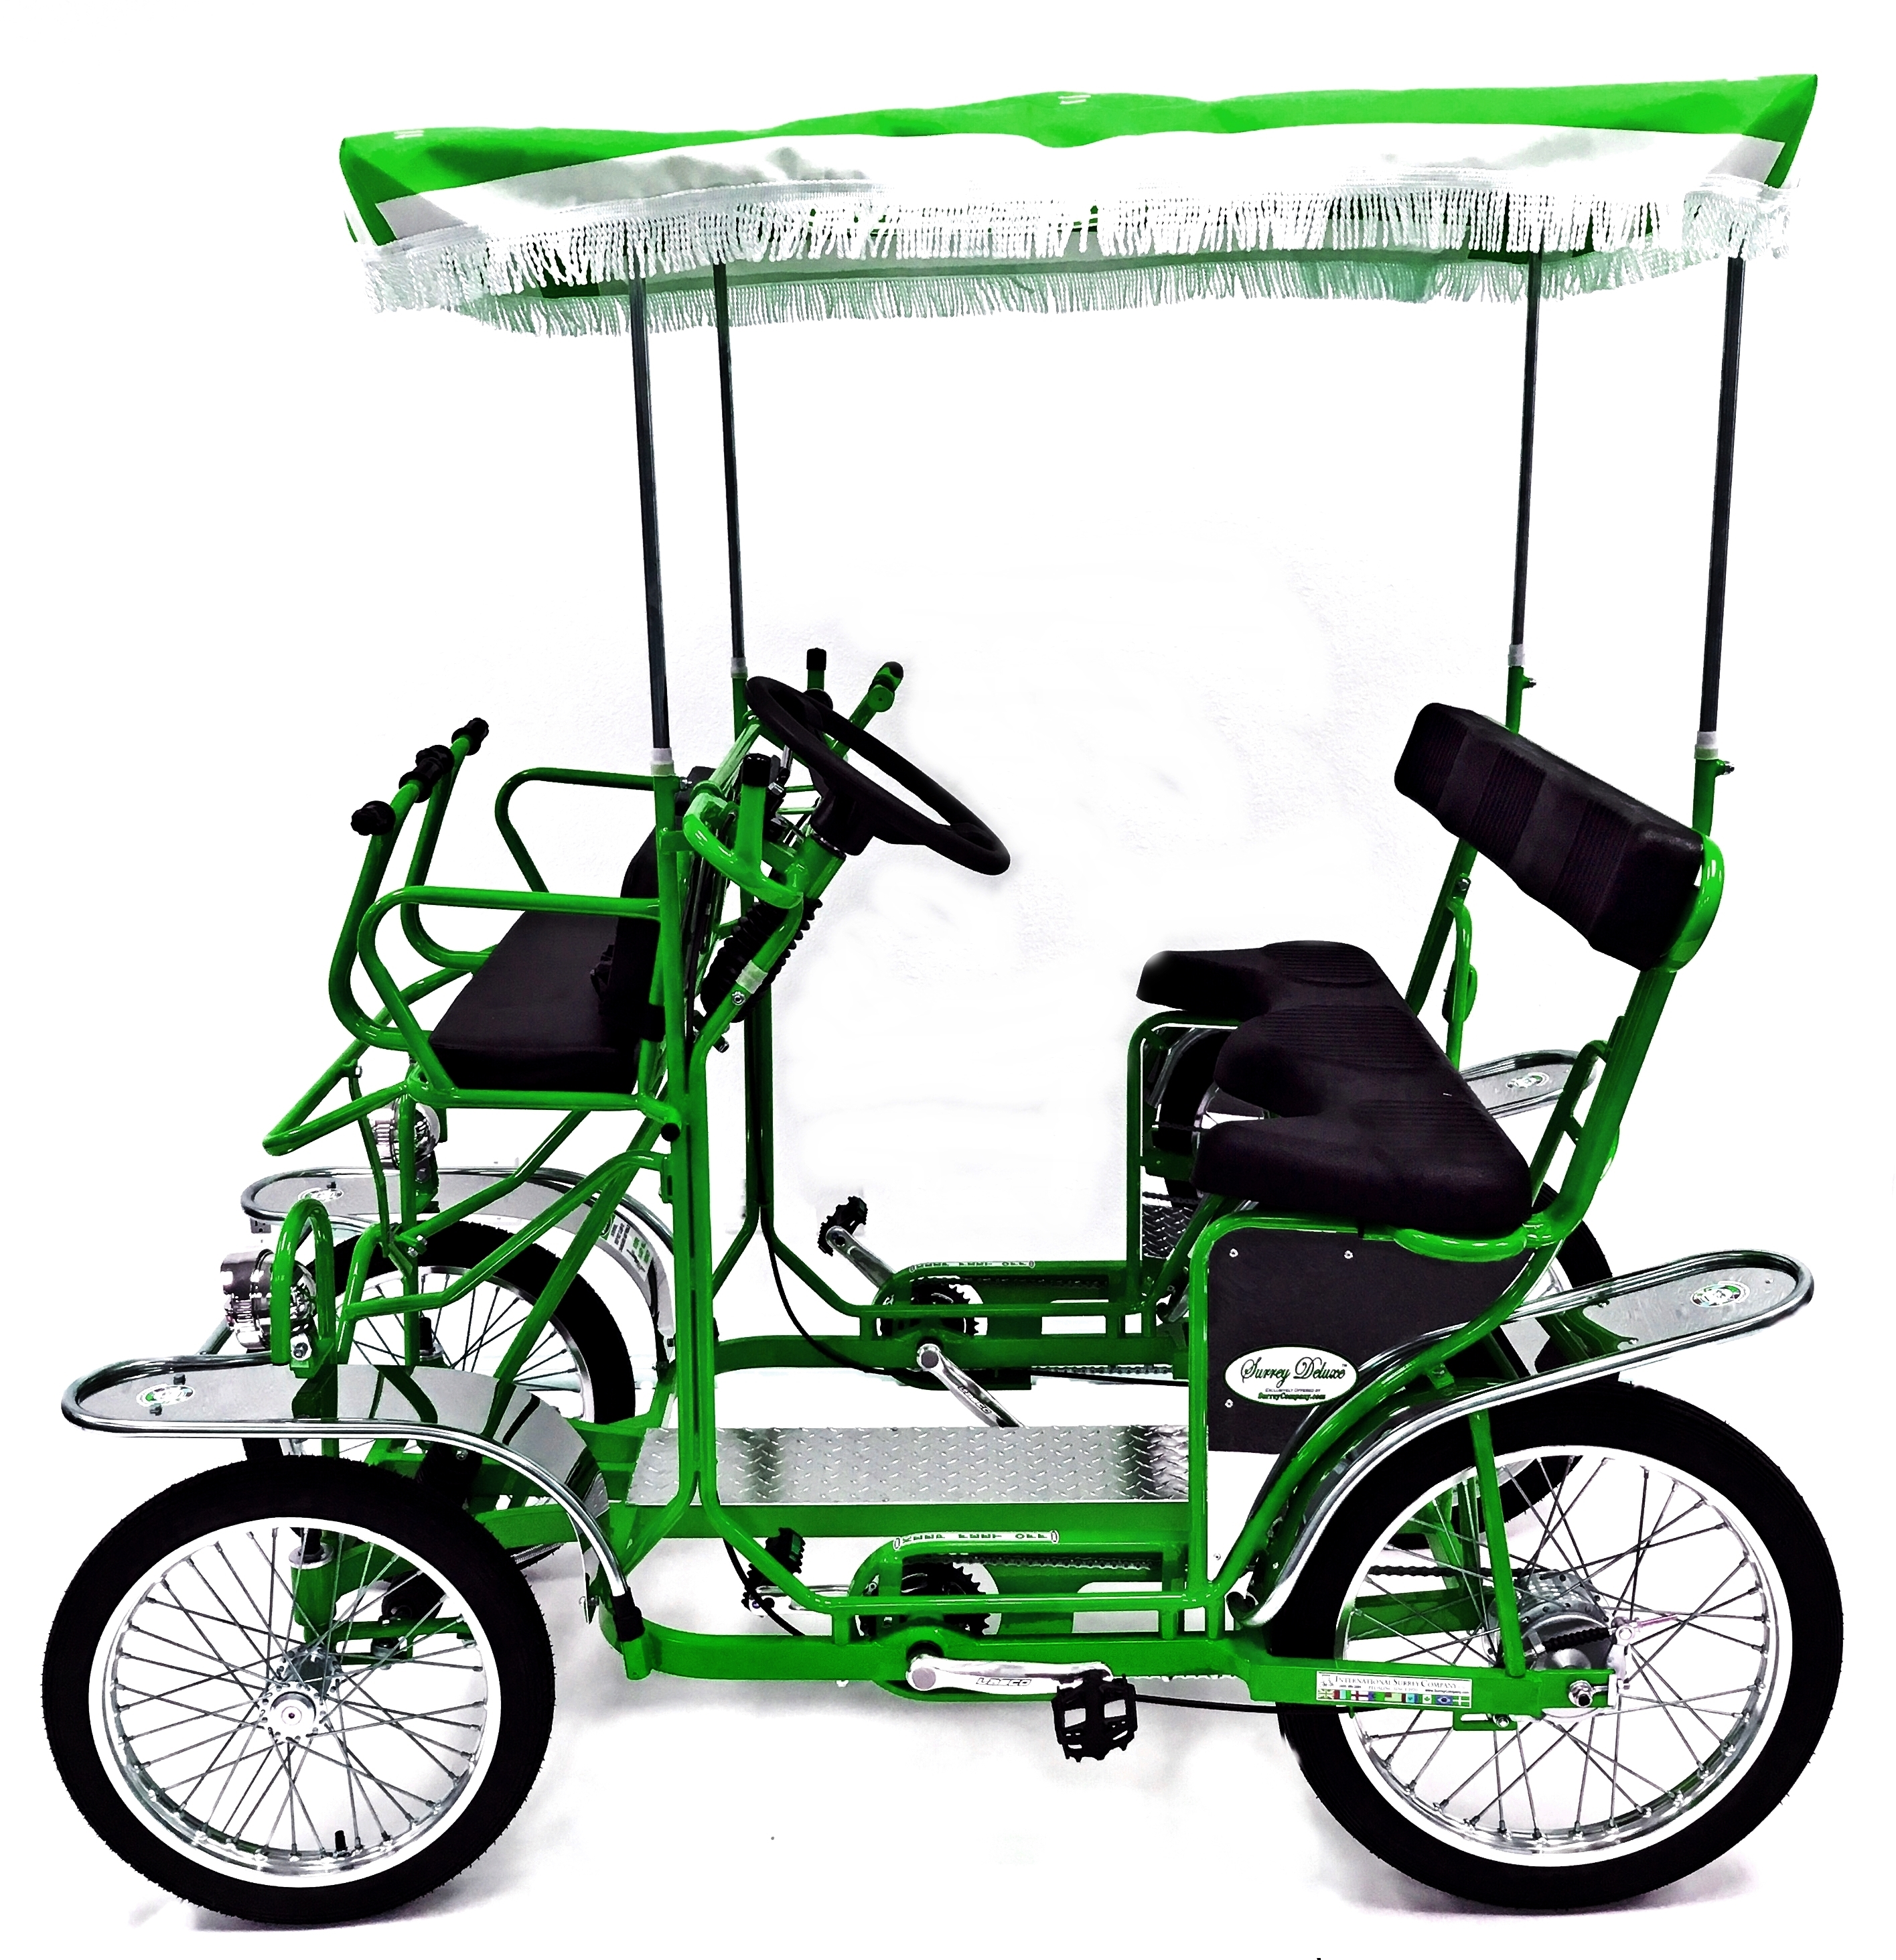 surrey bike four wheel bike 2 4 person bicycle surrey cycle. Black Bedroom Furniture Sets. Home Design Ideas